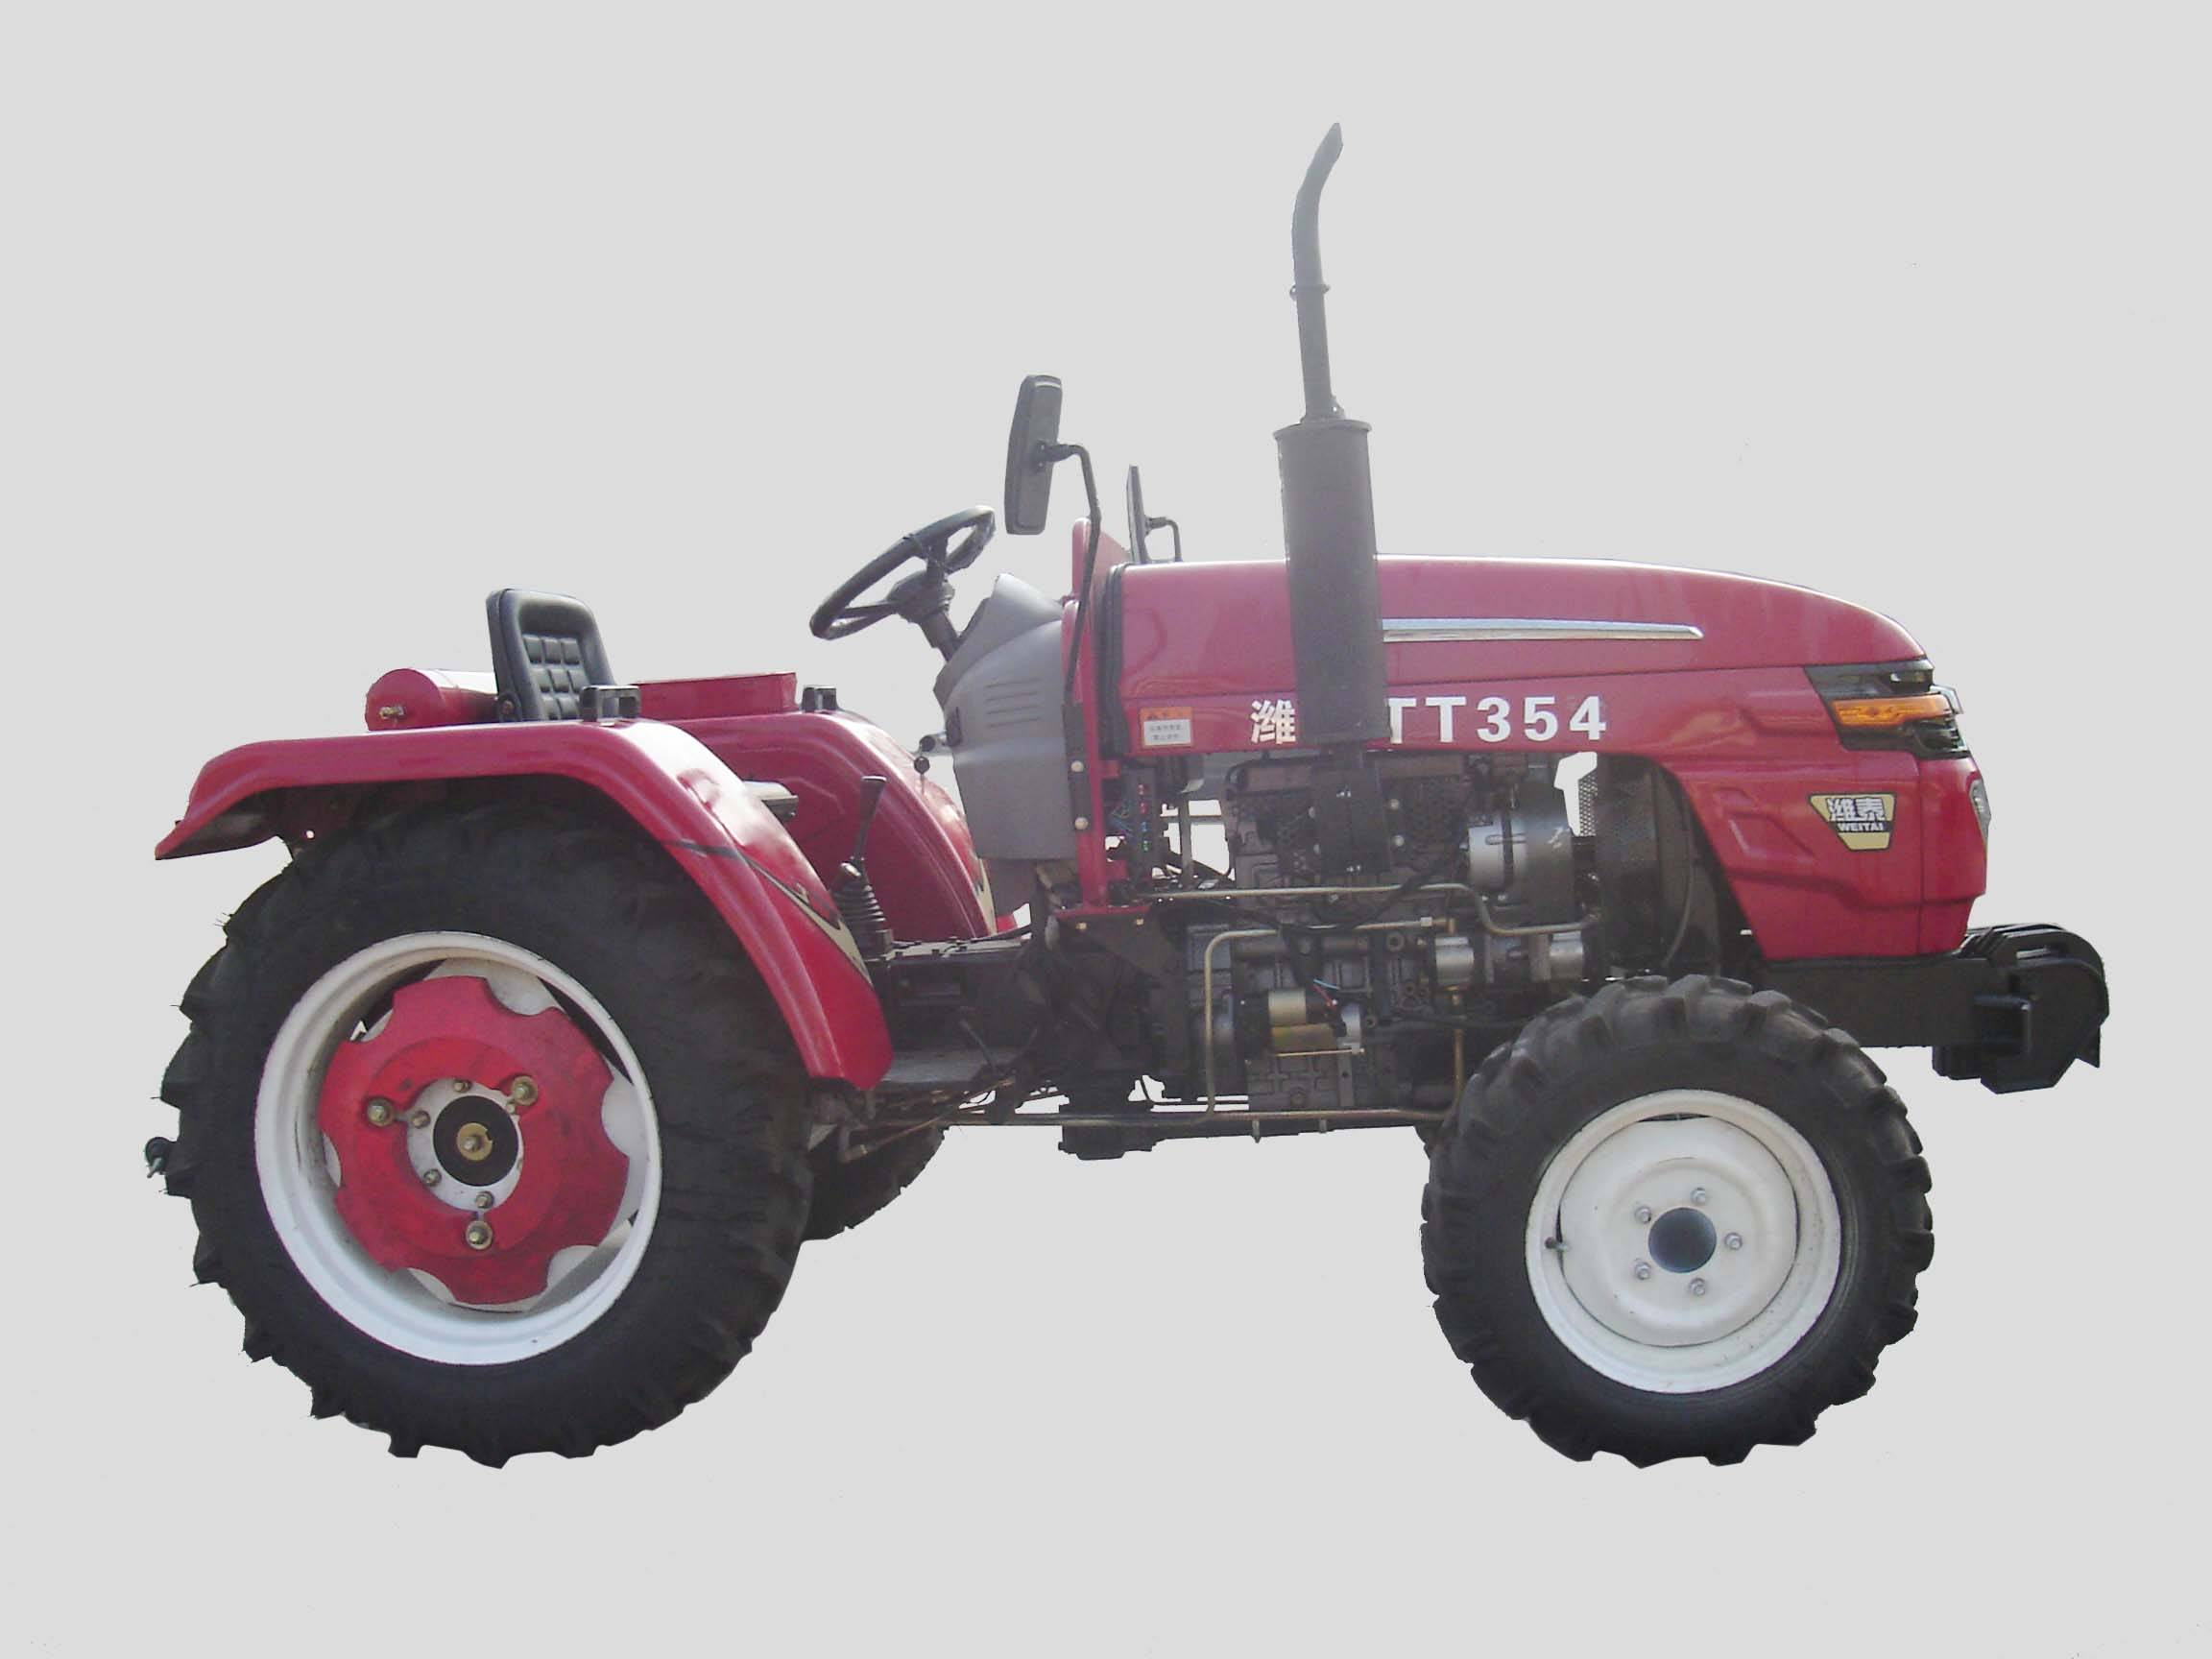 35hp 4wd mini tractor model TT354